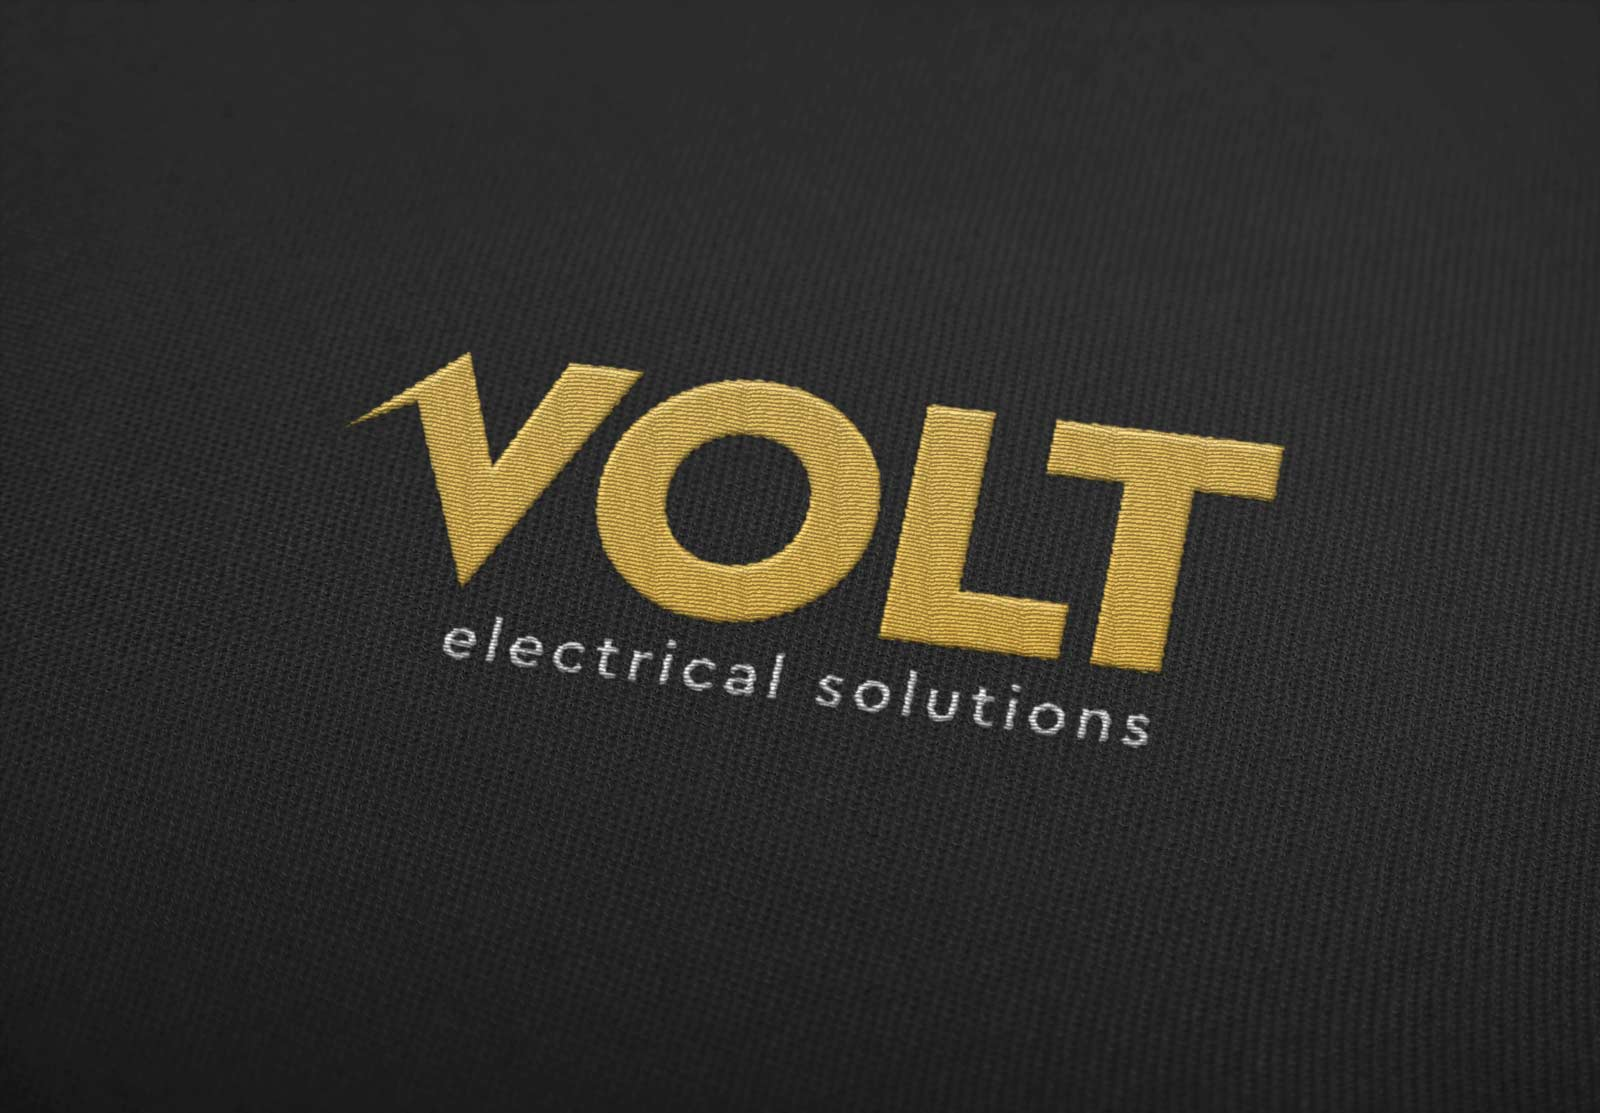 Volt Electrical Solutions Branded Clothing by Atom Creative Media